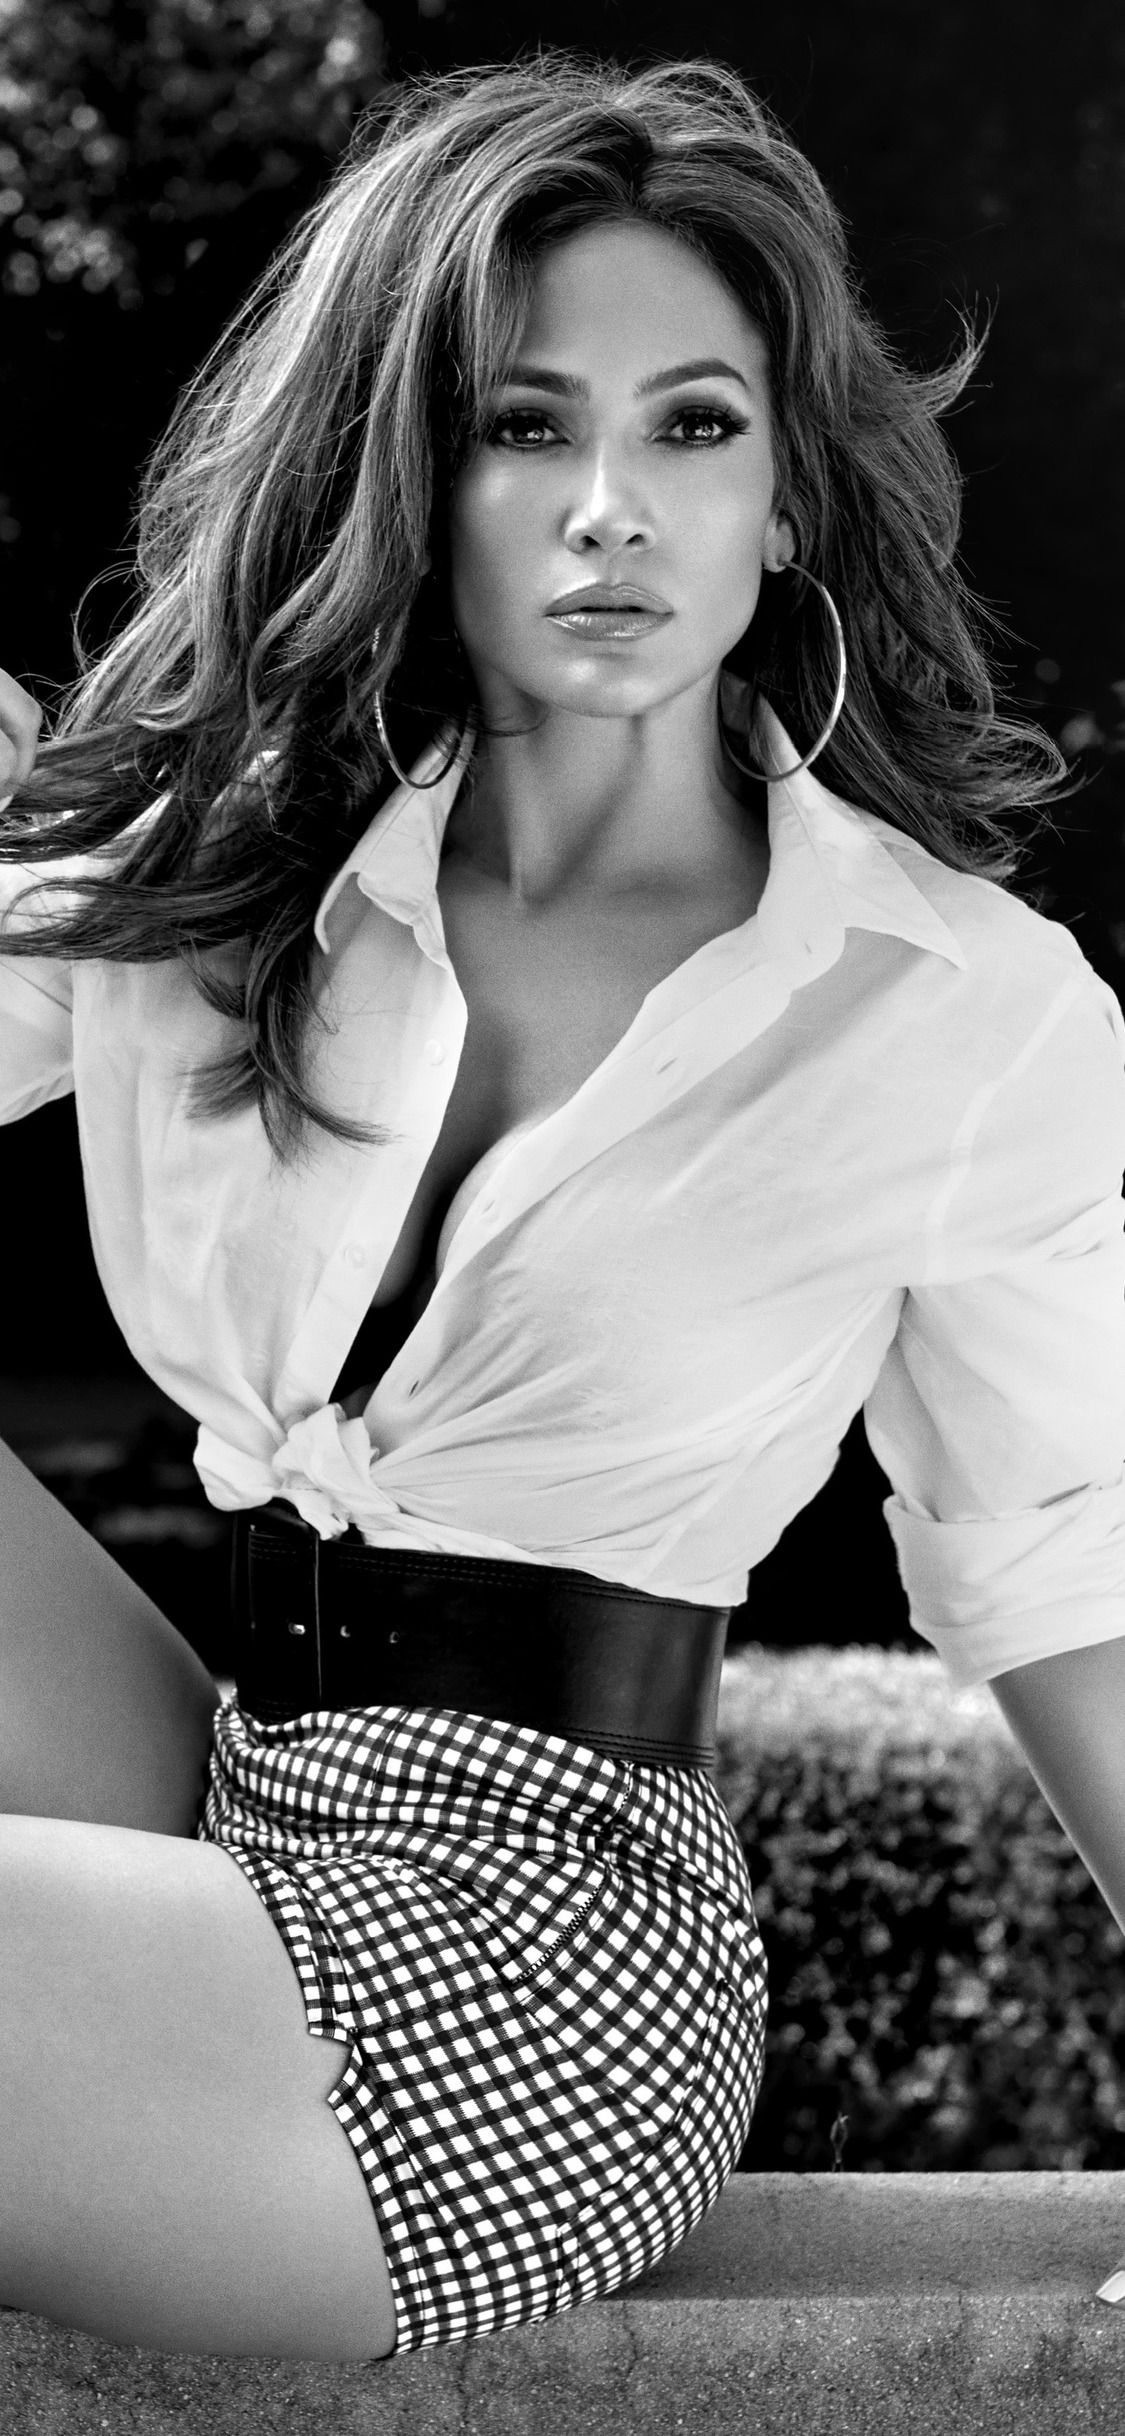 1125x2436 Jennifer Lopez Guess Campaign Photoshoot 5k Iphone Xs Iphone 10 Iphone X Hd 4k Wallpapers Images Backgrou Jennifer Lopez Jenifer Lopez J Lo Fashion